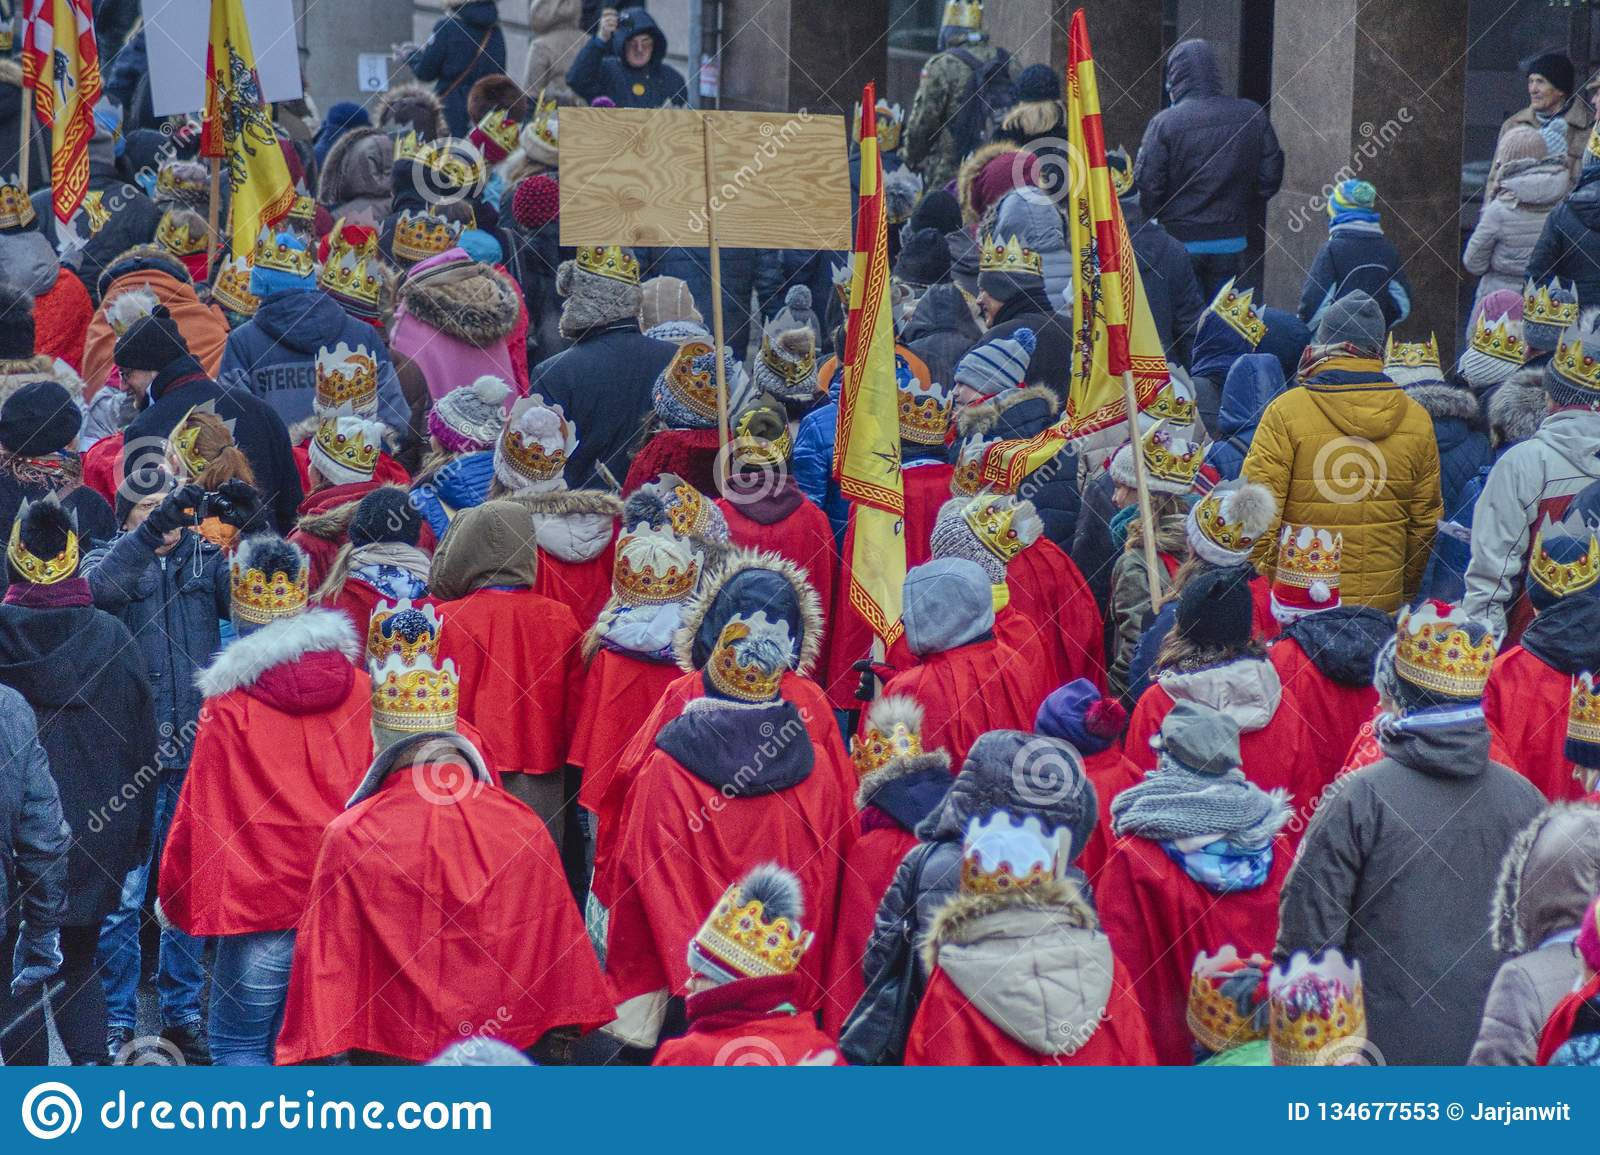 The three kings annual march on the Christian holiday